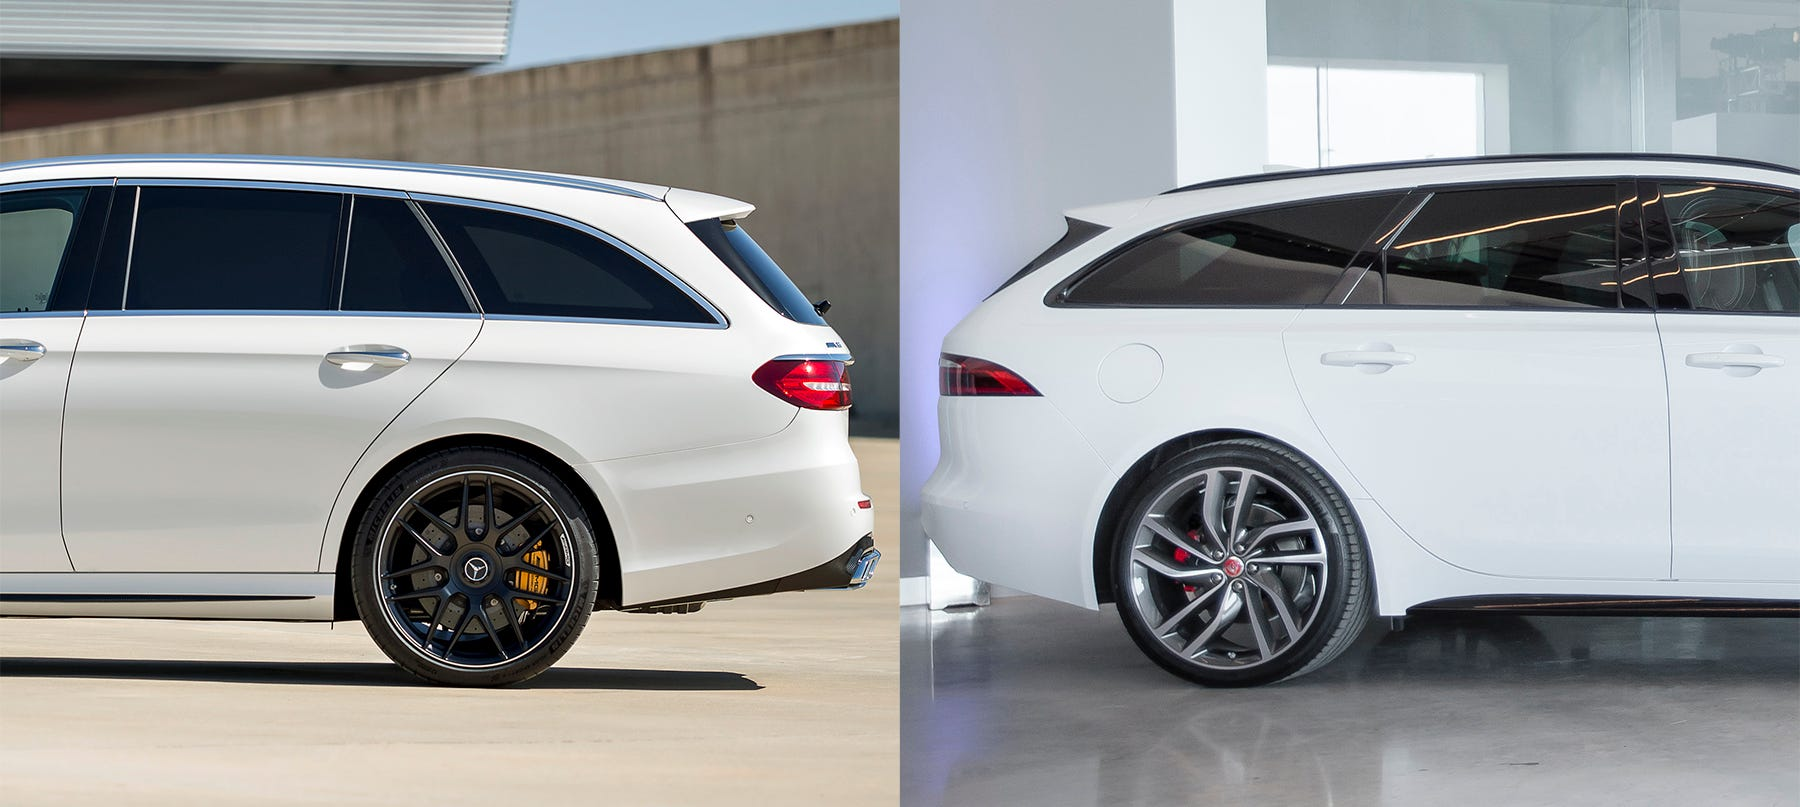 Detroit News auto reviewer Henry Payne compares the 2018 Mercedes AMG E63 S, left, and the Jaguar XF Sportbrake wagons cheek to cheek.